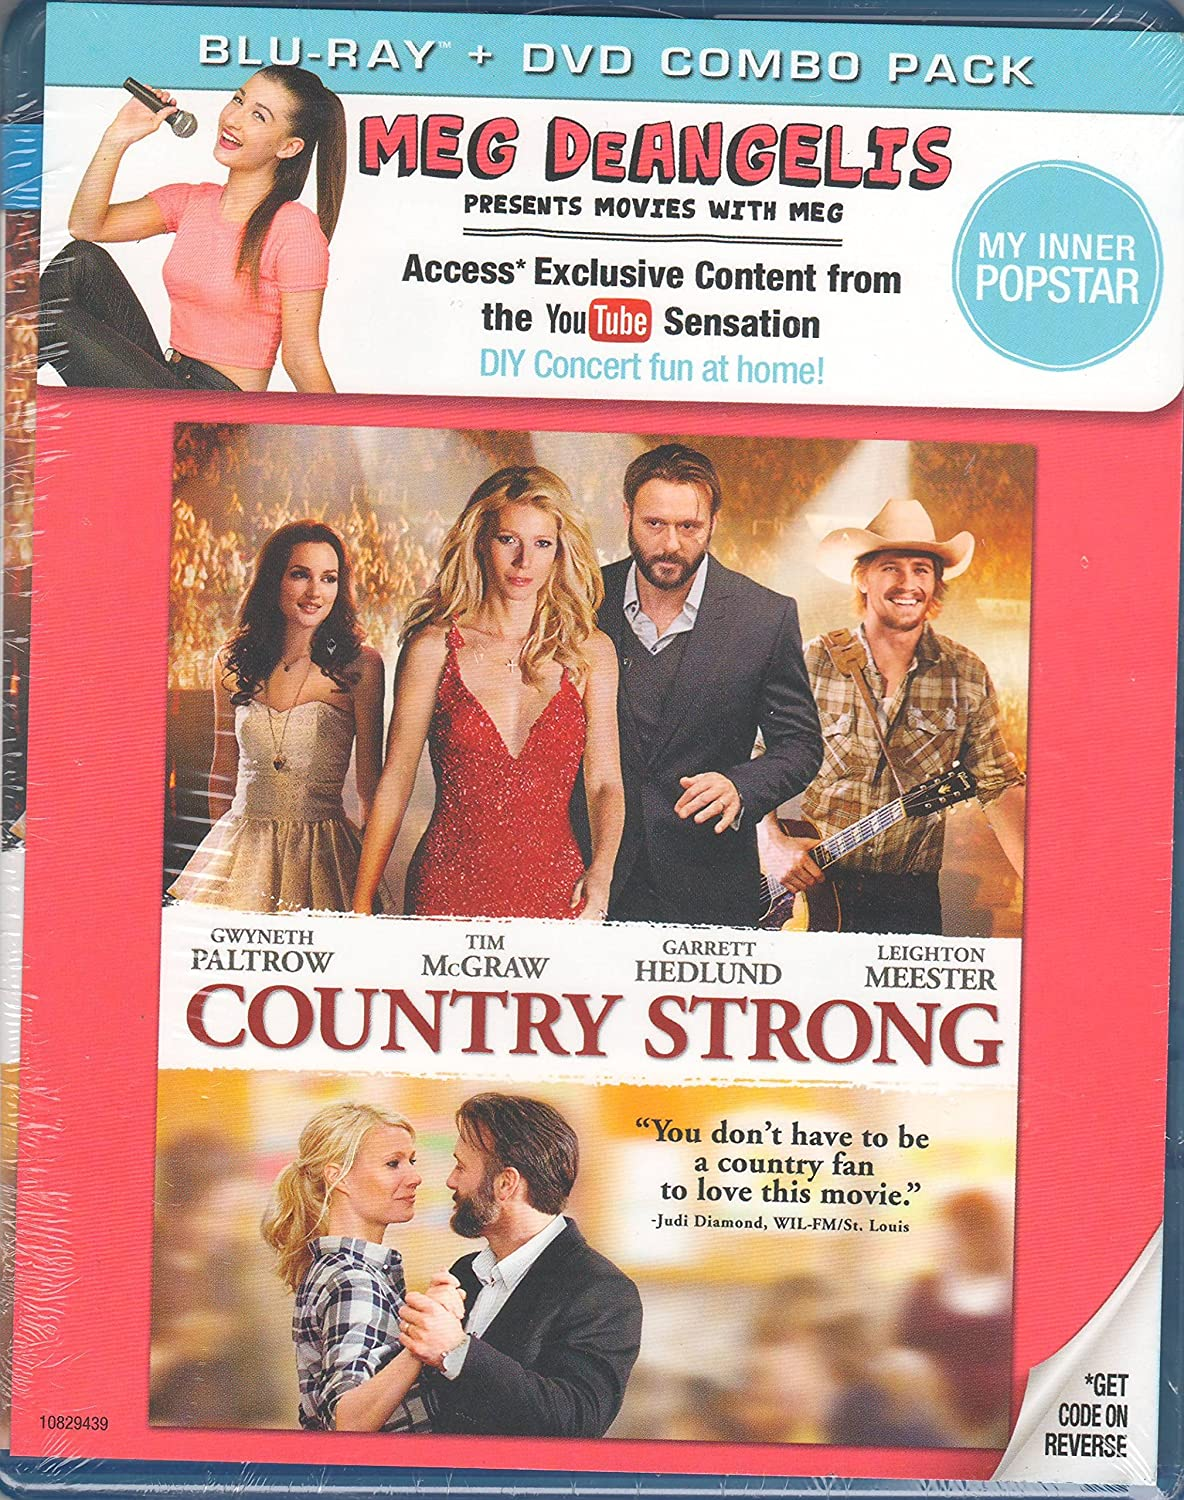 Gwyneth Paltrow to release Country Strong single Gwyneth Paltrow to release Country Strong single new picture